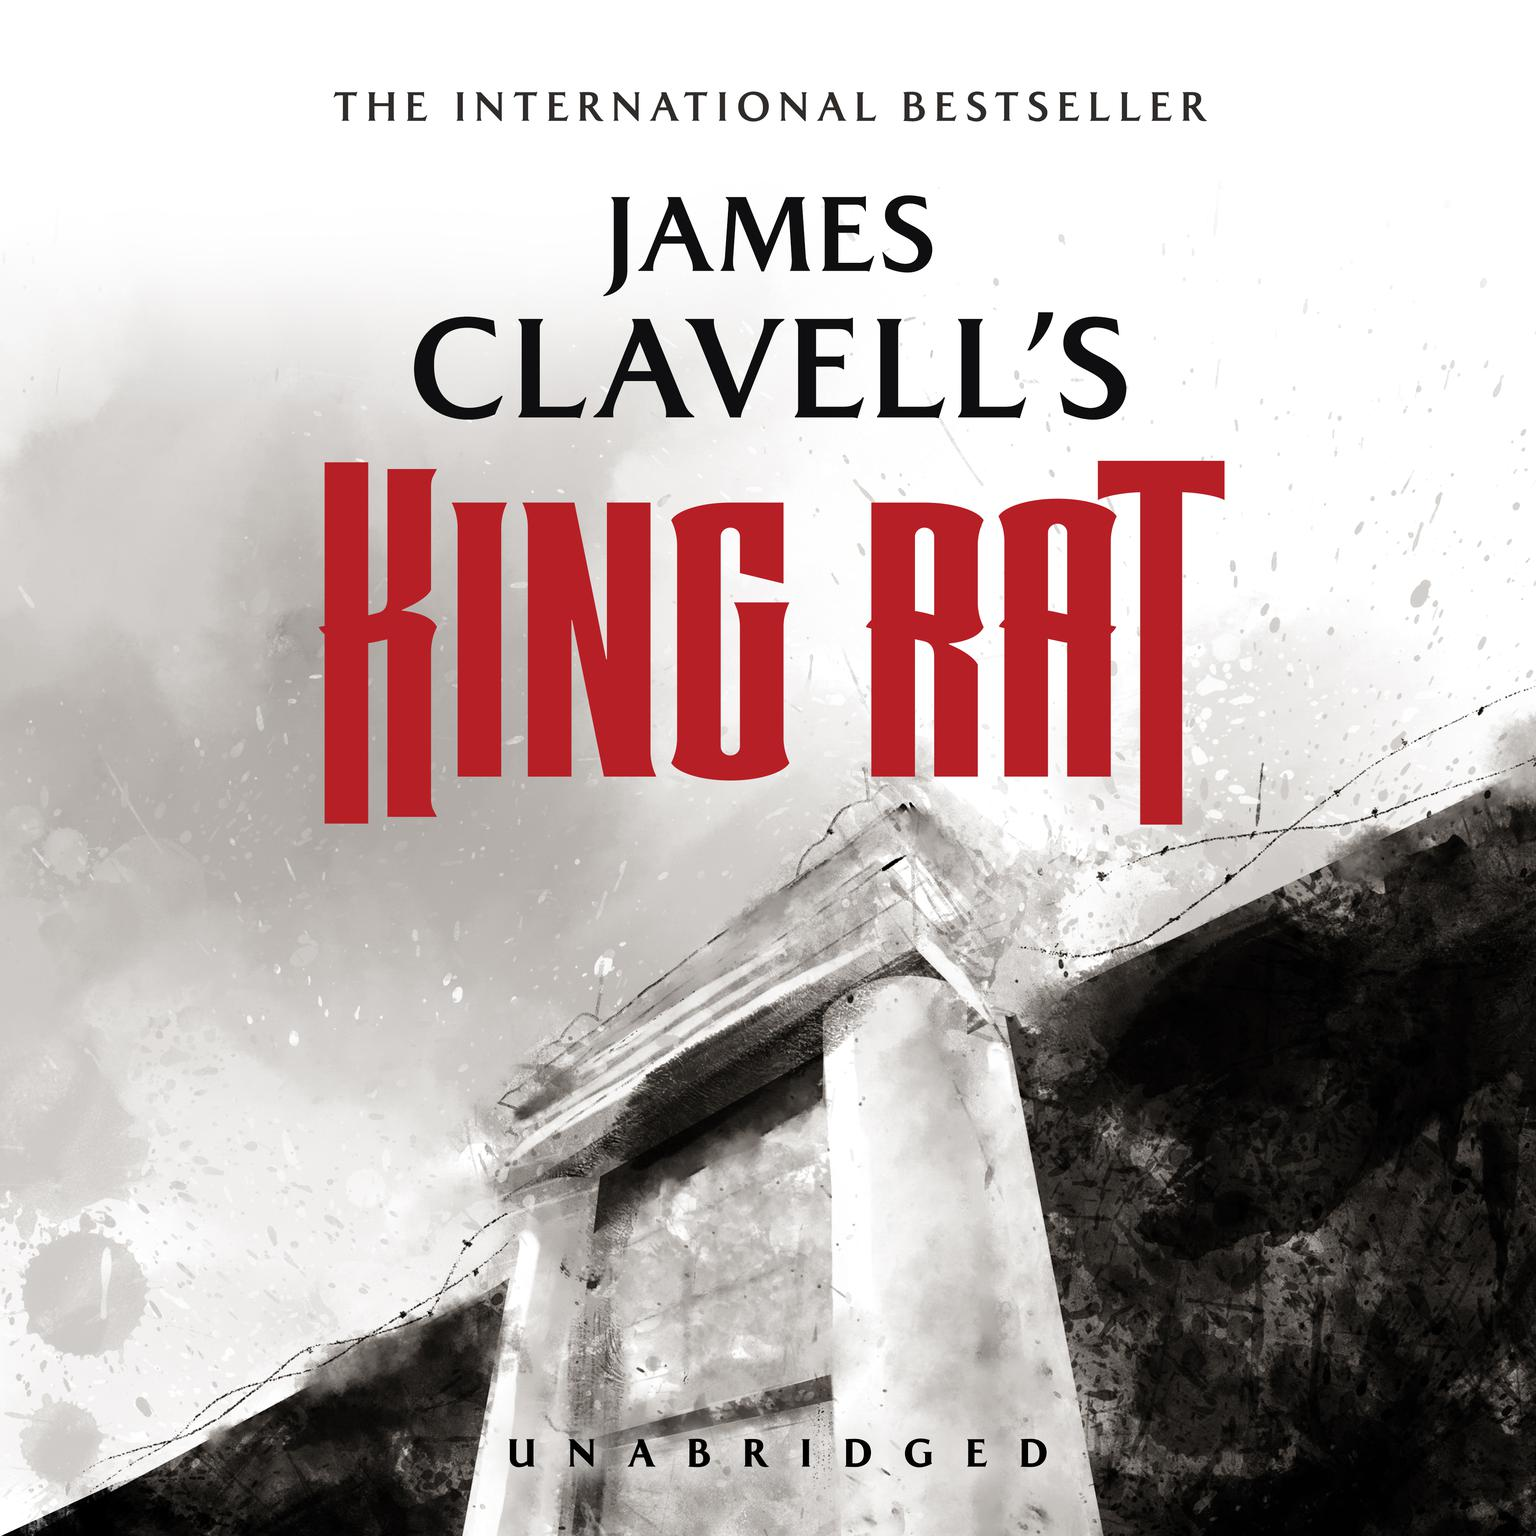 james clavell epub books free download